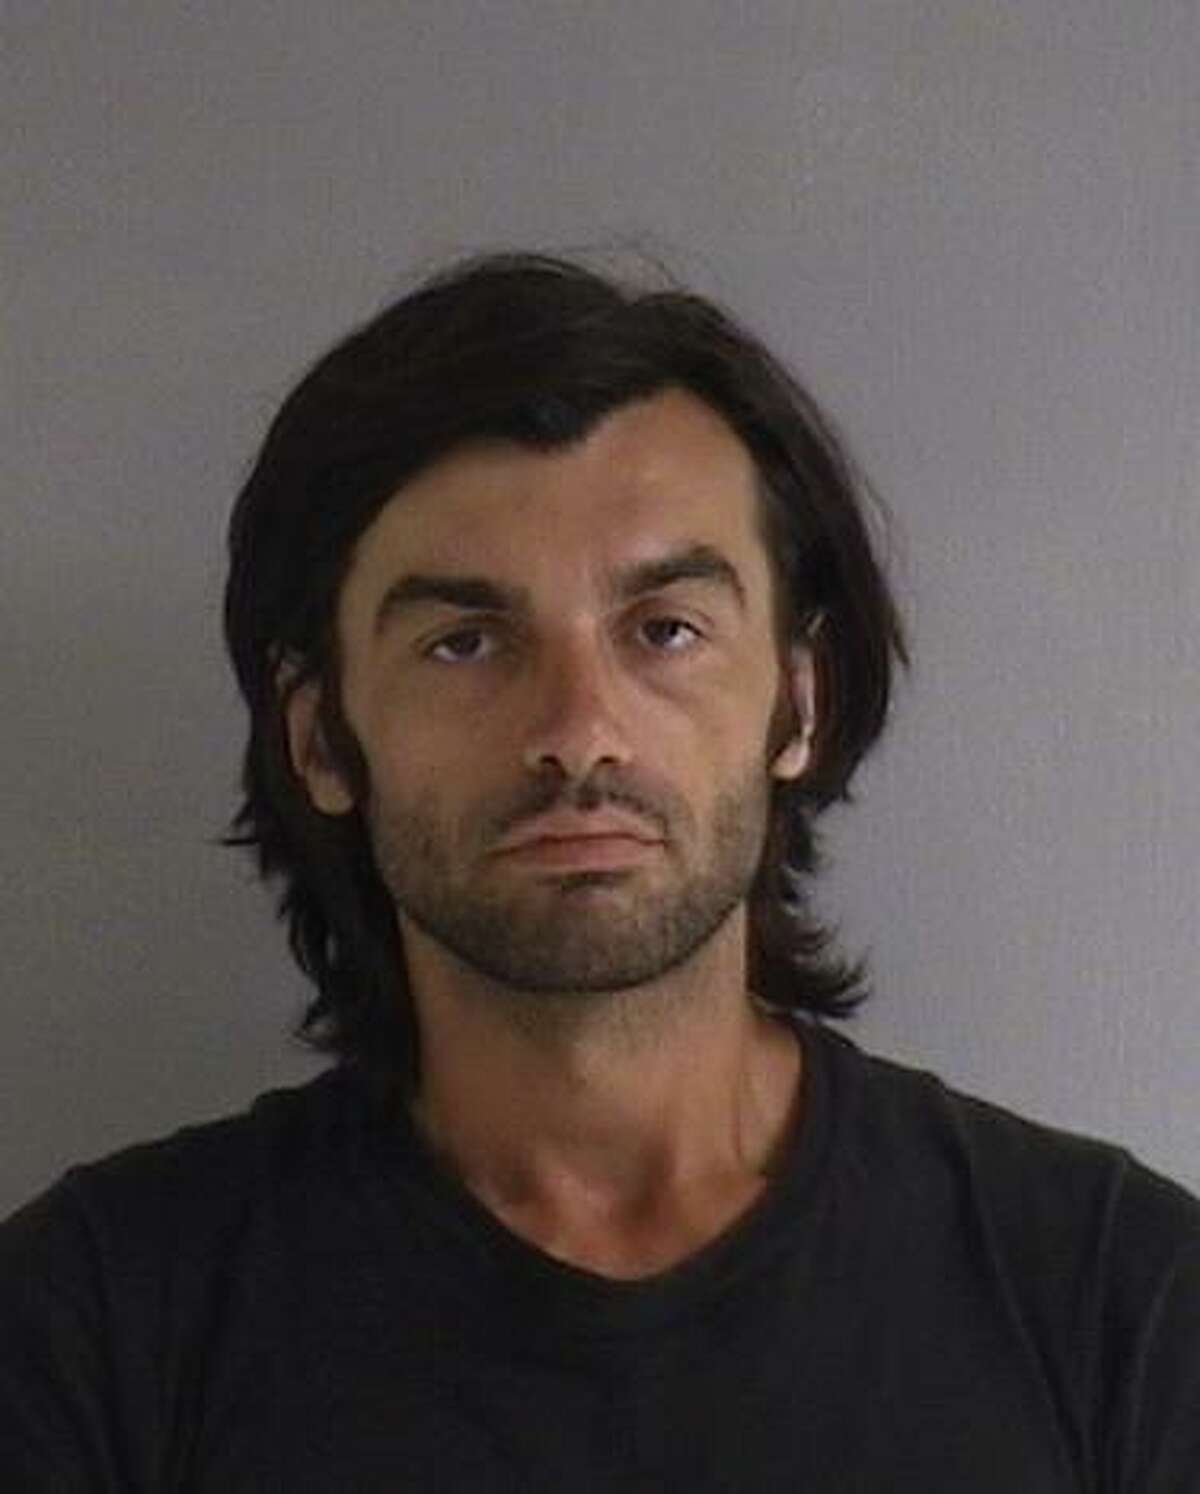 A West Haven man accused of shoplifting at Kohl's Friday afternoon is facing charges.